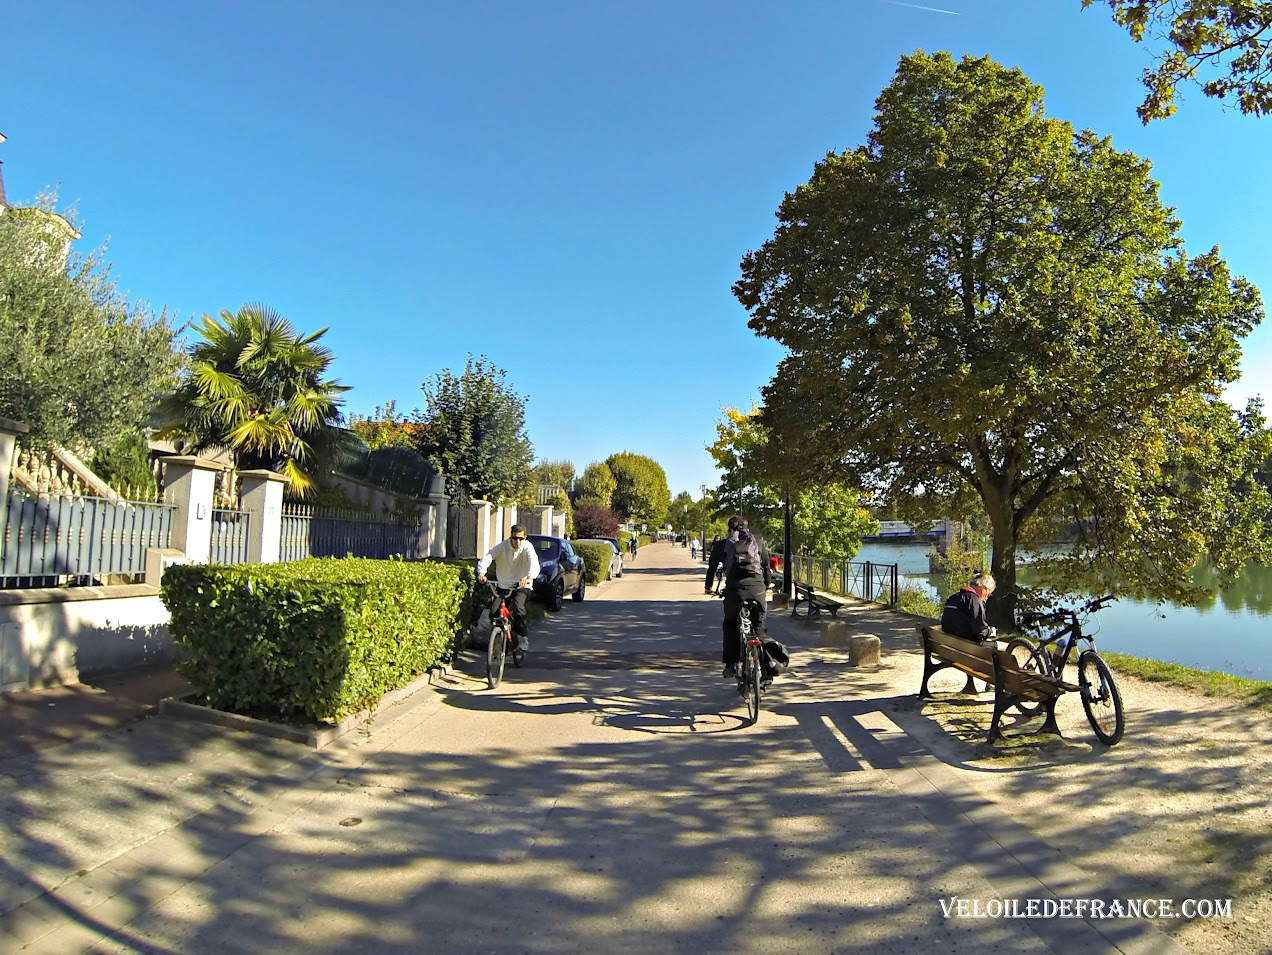 Cycling along the Marne river at Joinville-le-Pont-Cycling guide from Paris to the Marne River by veloiledefrance.com